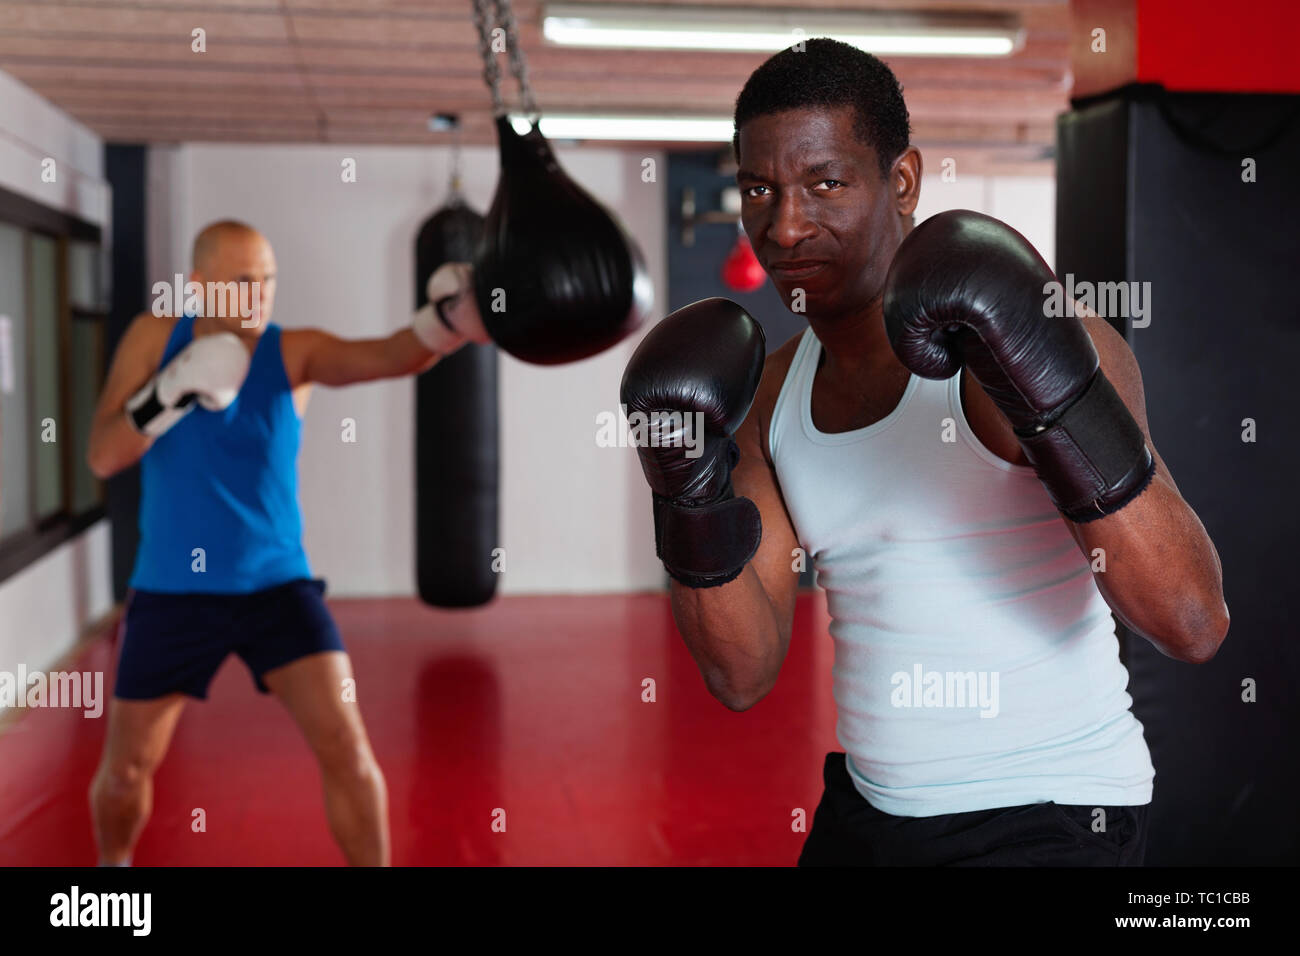 Potrait of smiling cheerful positive african american boxer who is training in gym - Stock Image